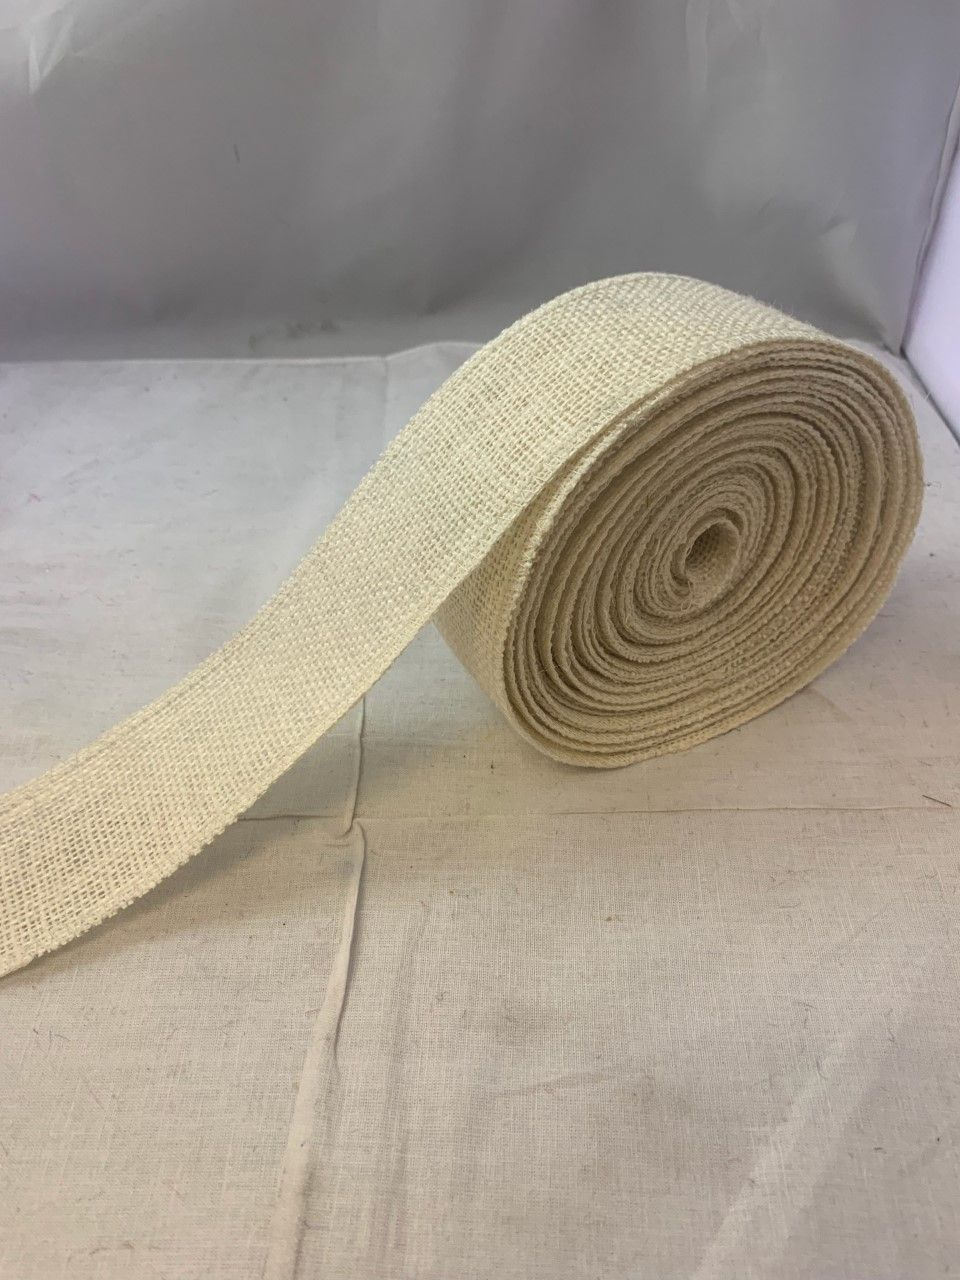 2 Oyster Burlap Ribbon 10 Yards Serged Made In Usa In 2020 Burlap Ribbon Burlap Ribbon